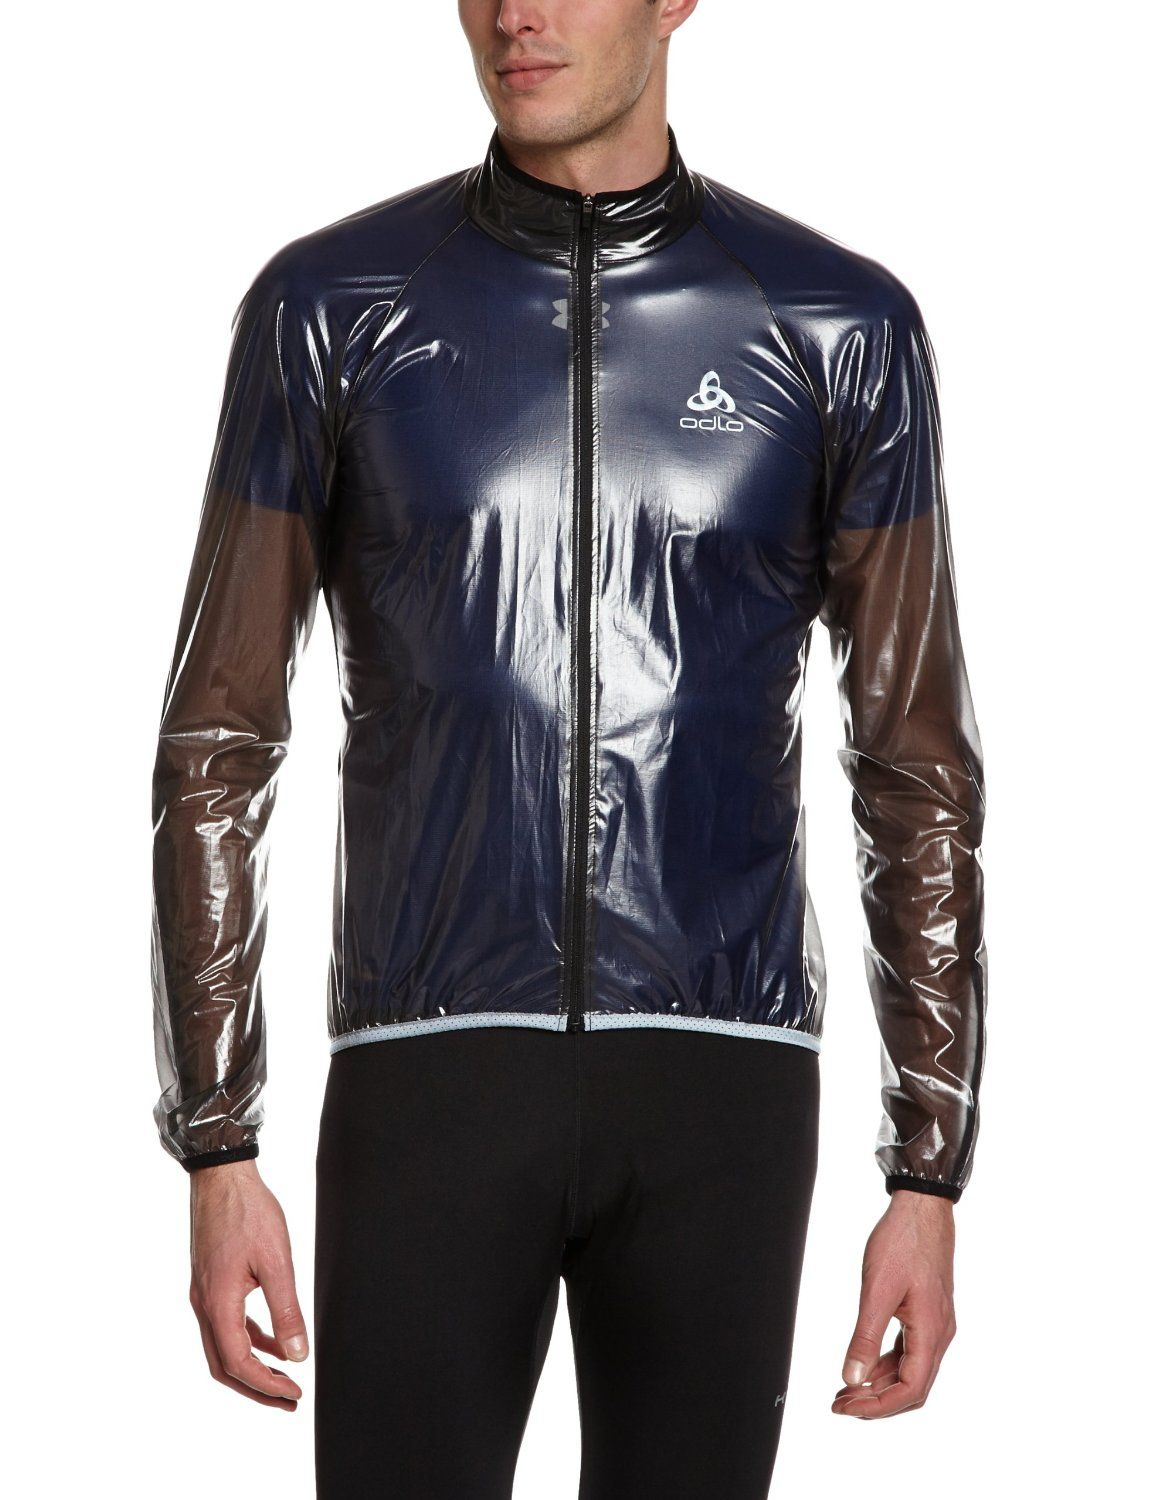 MudAmazon Men's ukSports Jacket co Hardshell Odlo BWQredCox